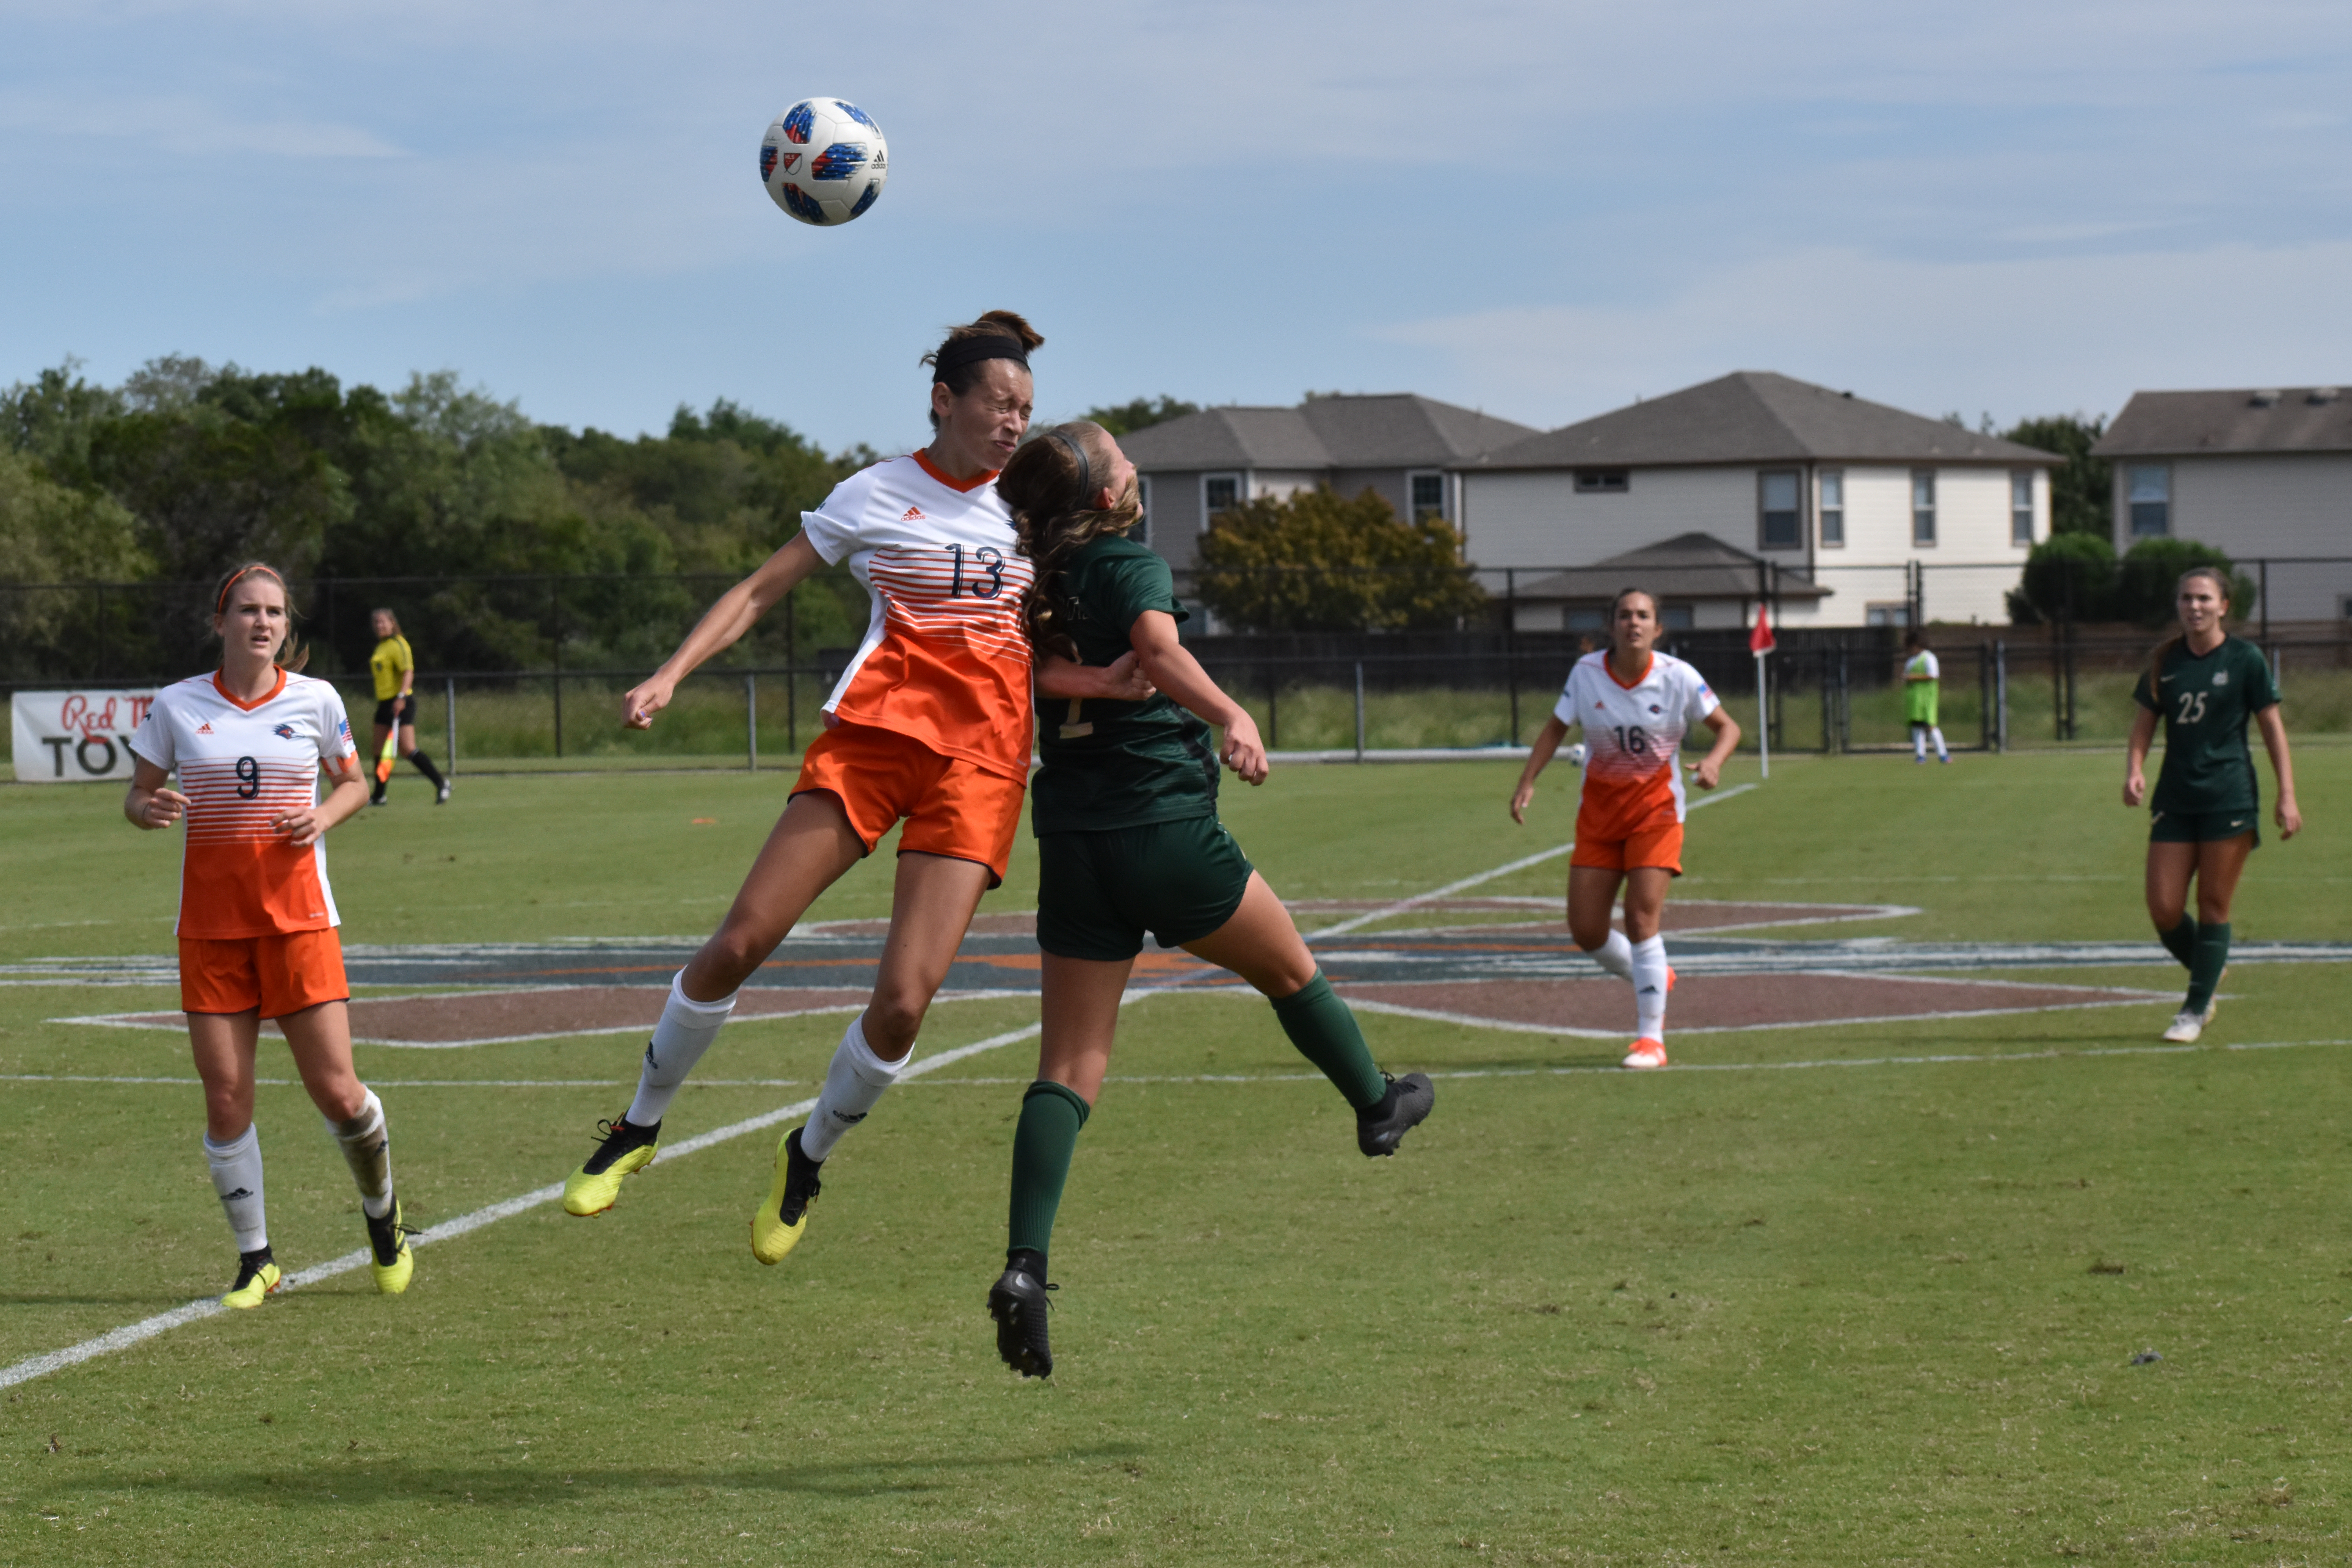 Marianne Hernandez going head first for a ball.